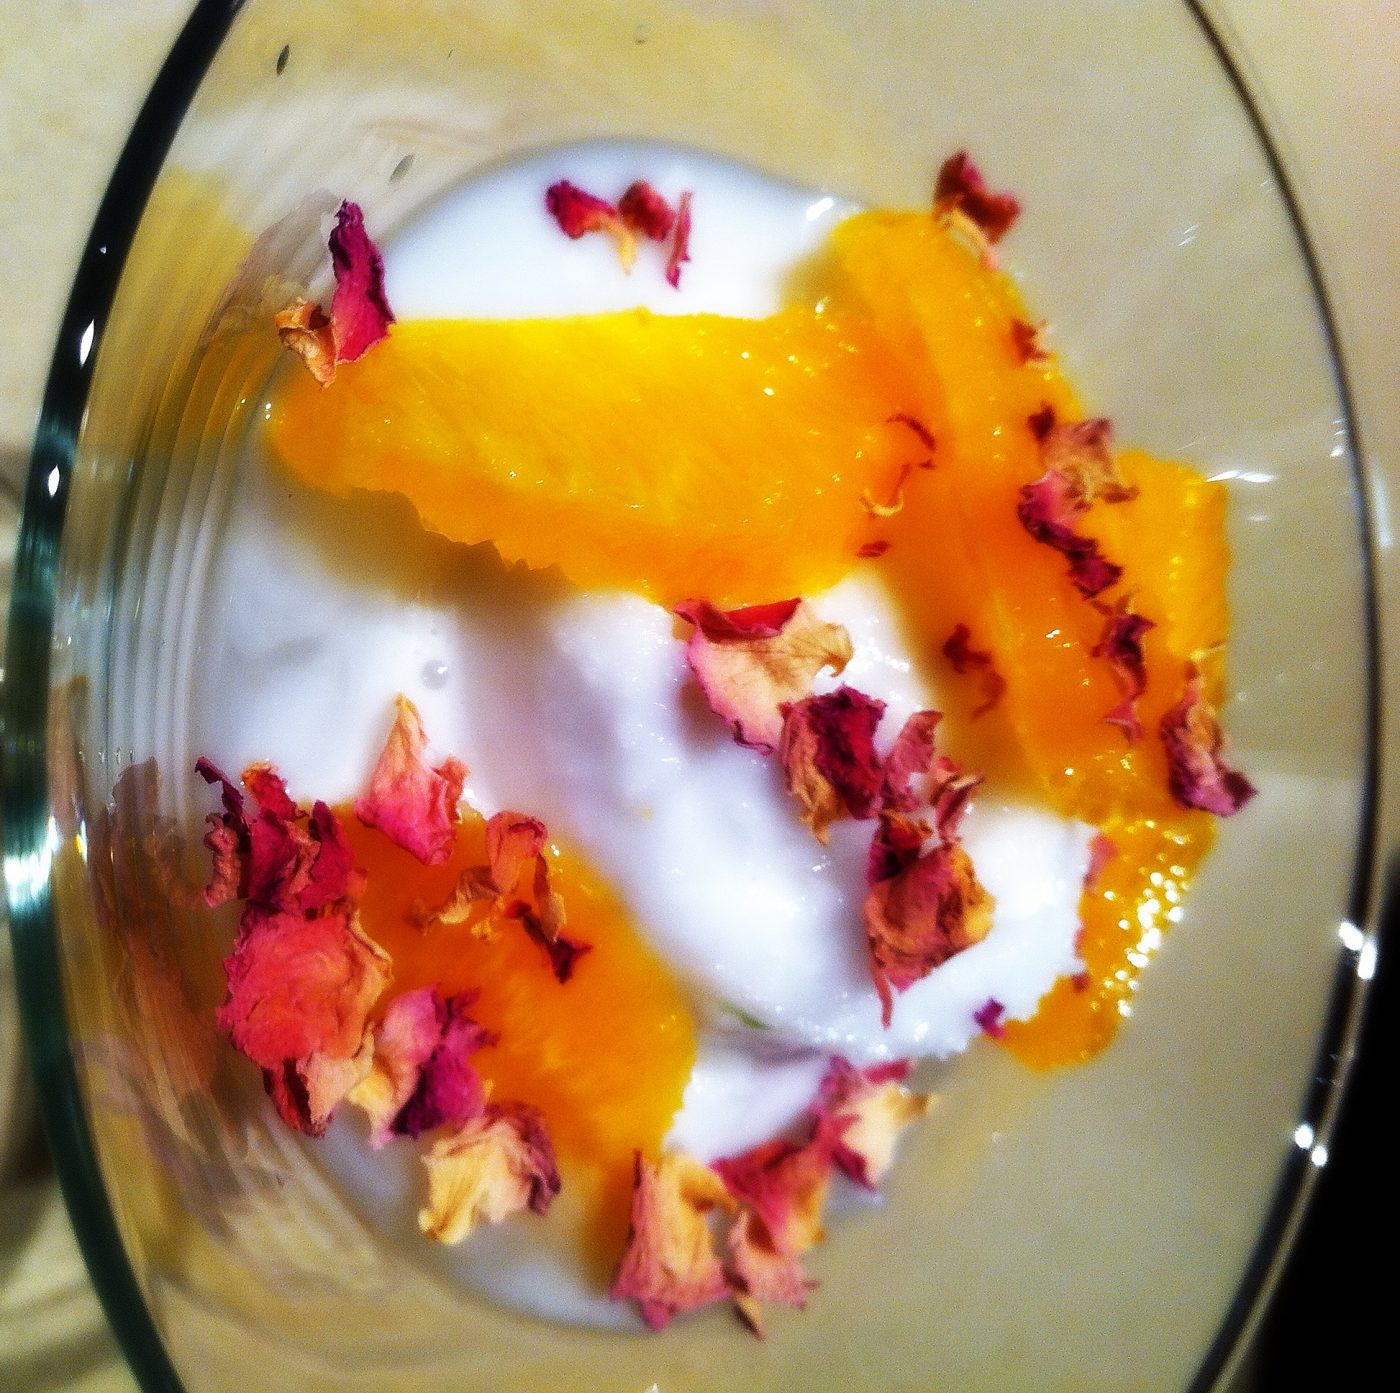 , Coconut sorbet with oranges in lime syrup